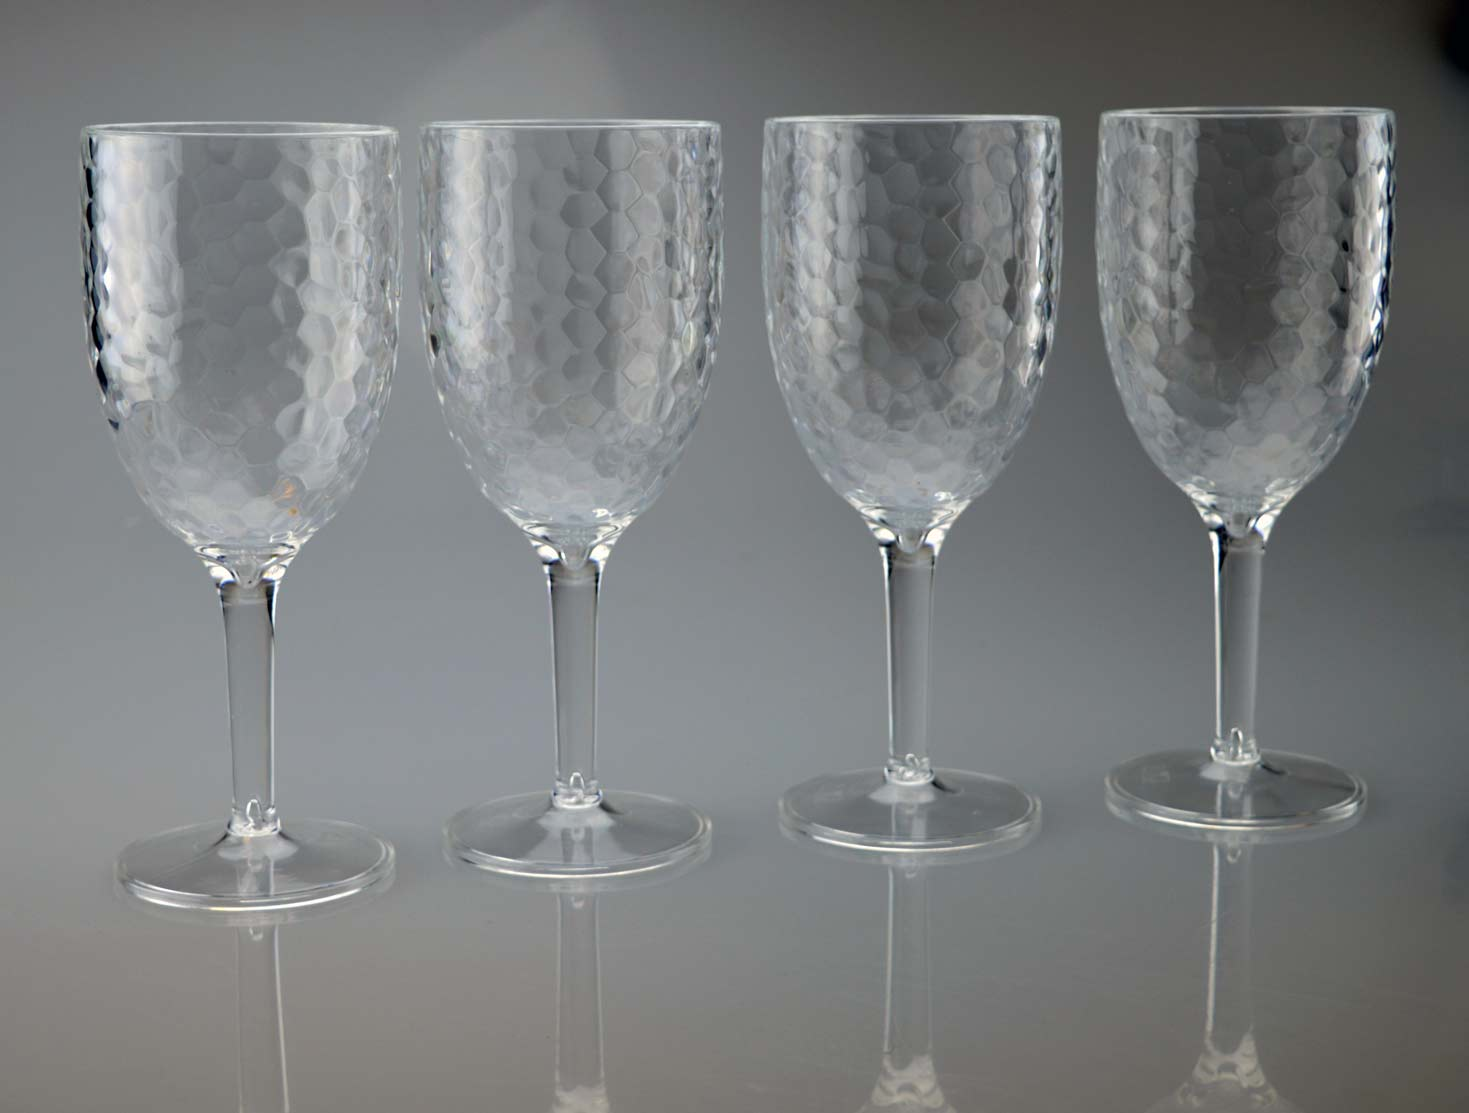 3131f9df557 Details about Clear High Quality Plastic Wine Glasses Goblets Pack of 2 or  4 Outdoor Reusable